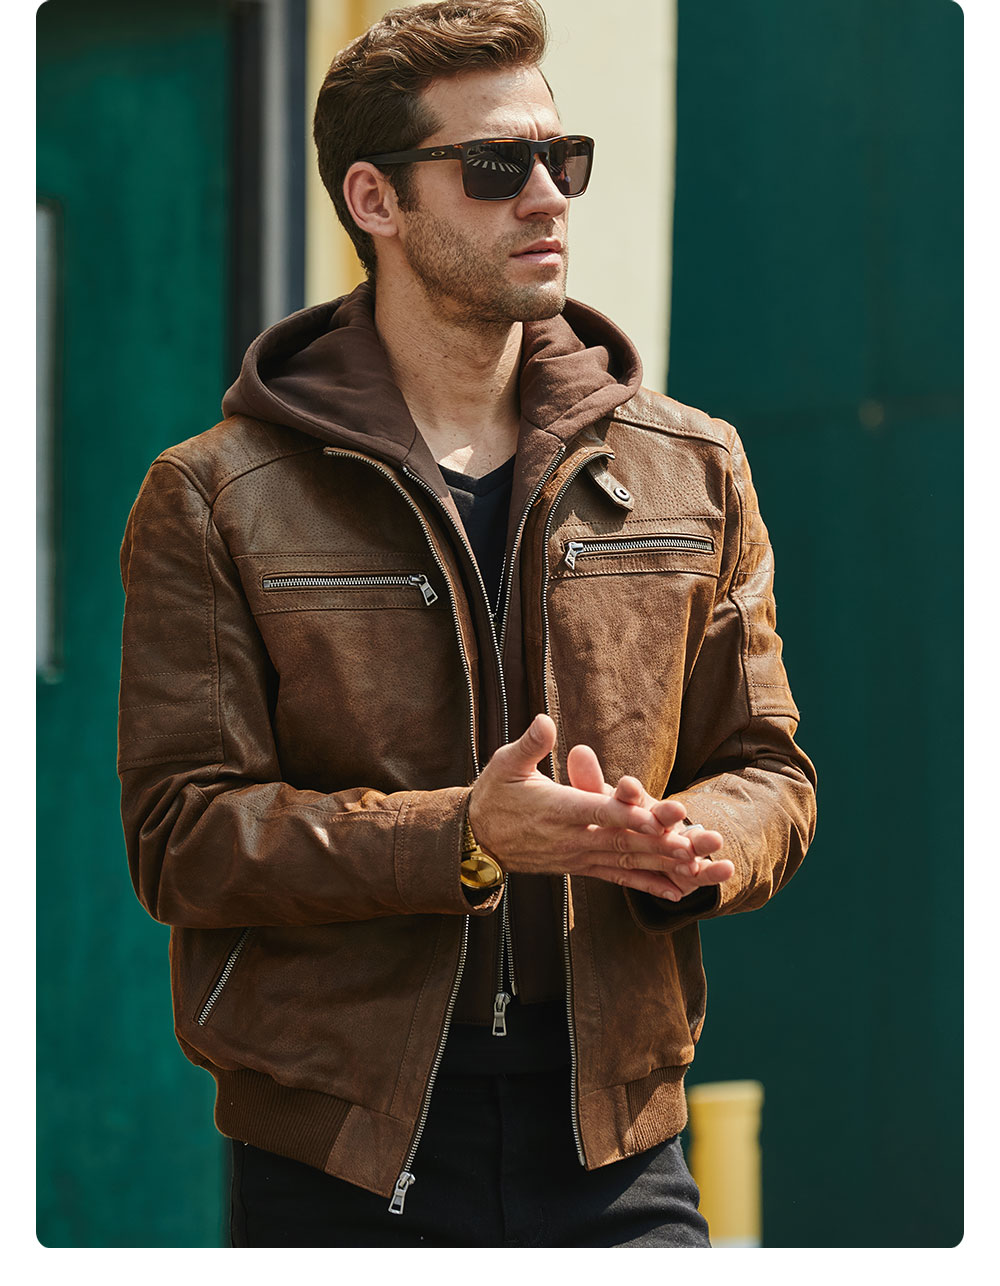 H6a29f82e609544dda674bceca704cd3eN New Men's Leather Jacket, Brown Jacket Made Of Genuine Leather With A Removable Hood, Warm Leather Jacket For Men For The Winter